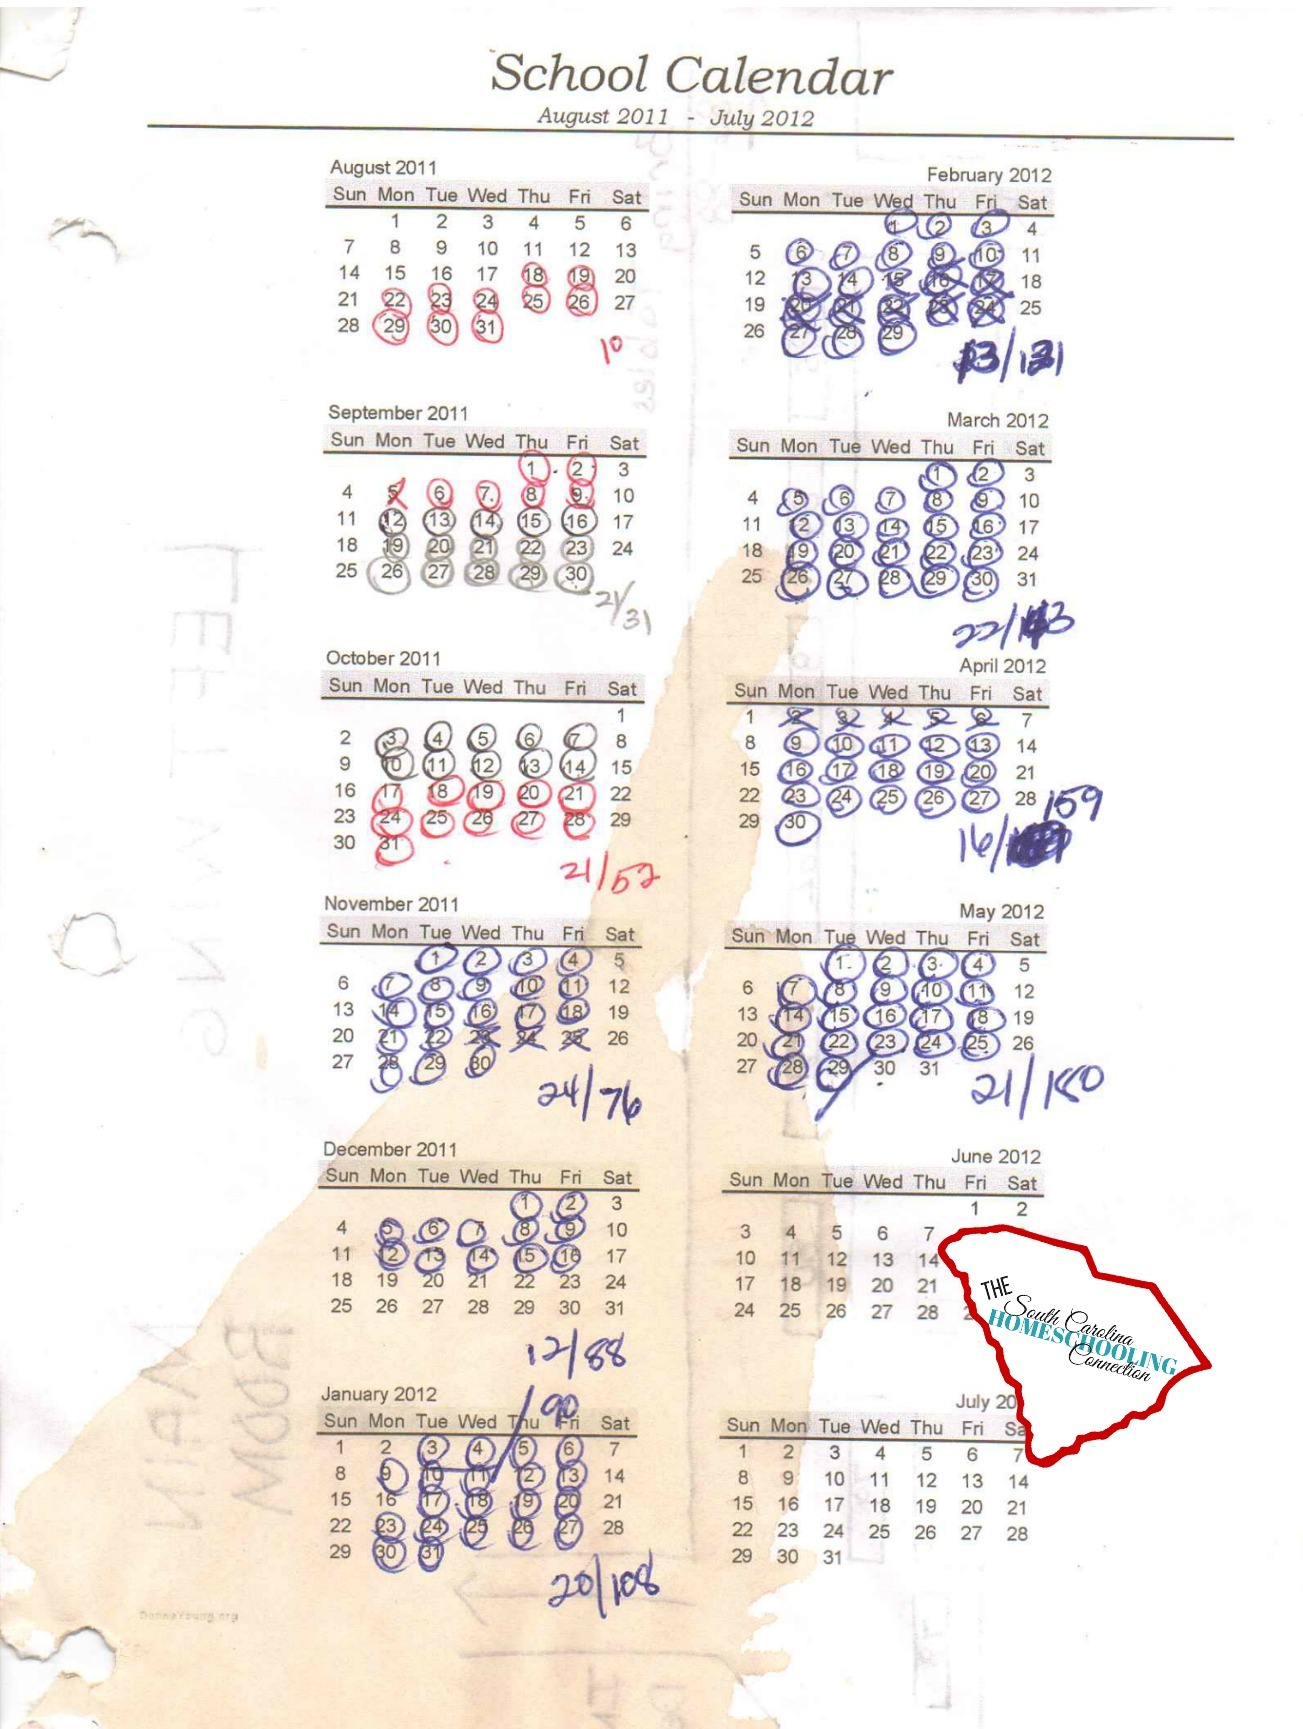 This calendar has the authenticity factor with the coffee stain and the different colored pens. My calendar examples run from August thru July. But, you can also find a printable calendar that runs from June-May, July-June, or September-August. You can start counting your days anytime you want.